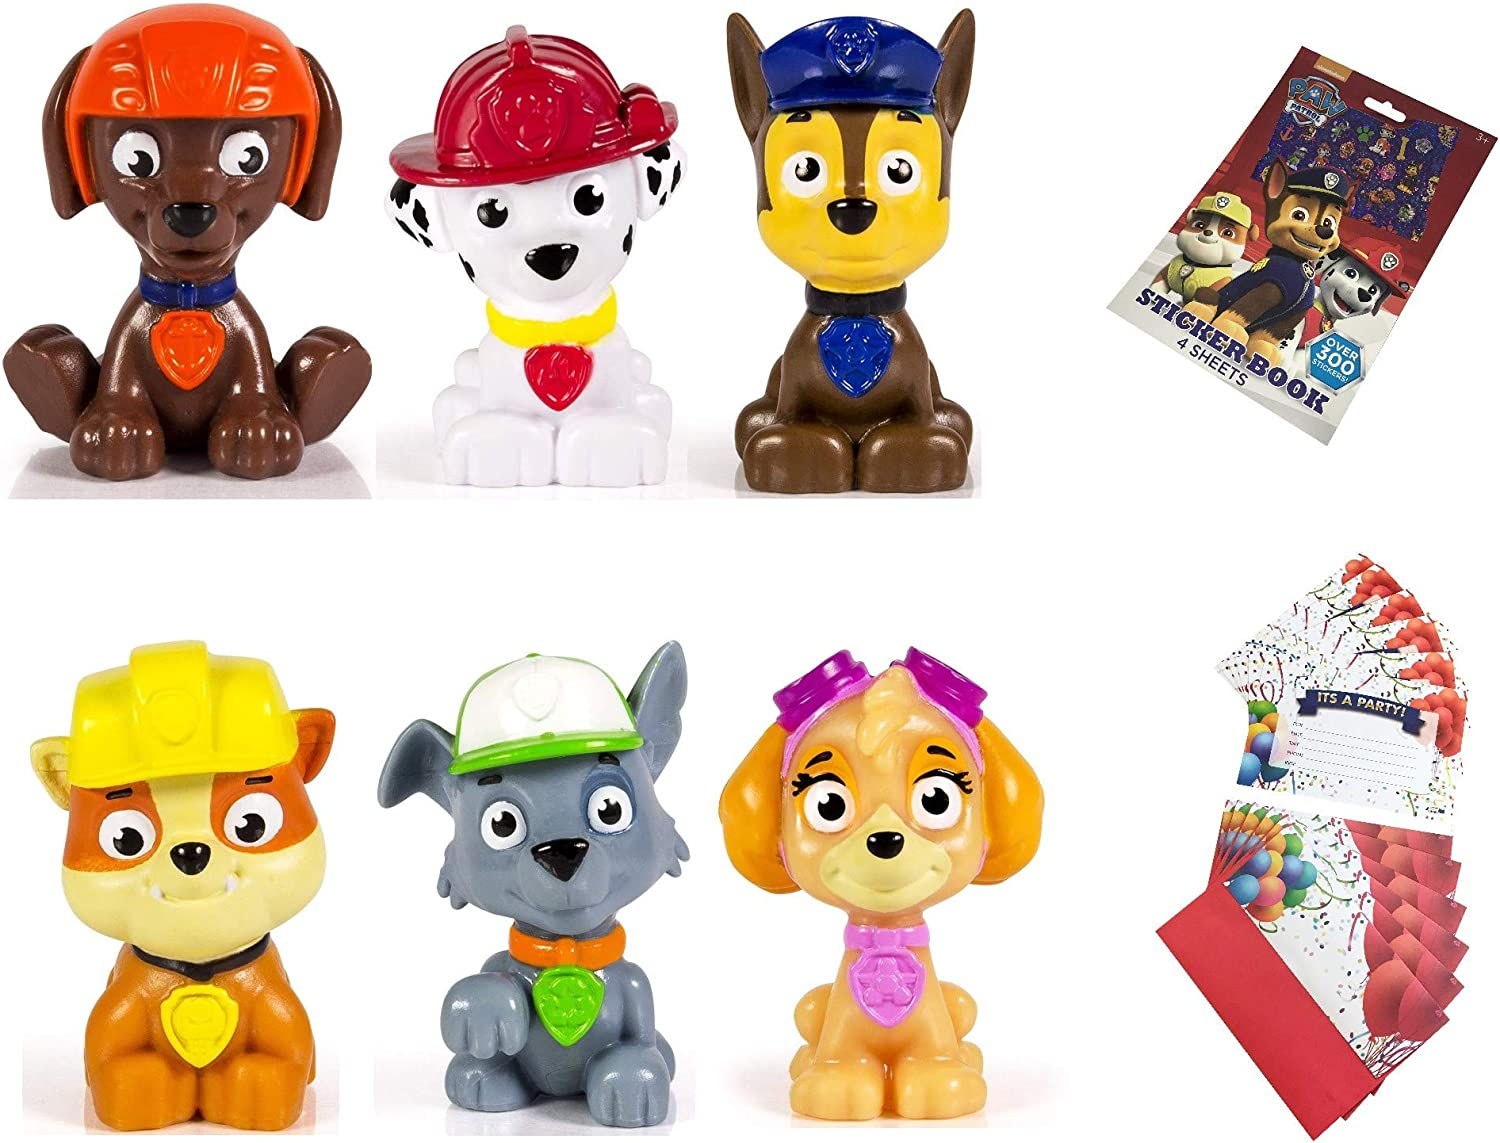 Paw Patrol Mini Figures Set of 6, Rocky, Zuma, Skye, Rubble, Marshall, Chase Paw Patrol Reward Sticker Book with 300 Stickers 6 Party Invitations Cards: Amazon.es: Juguetes y juegos